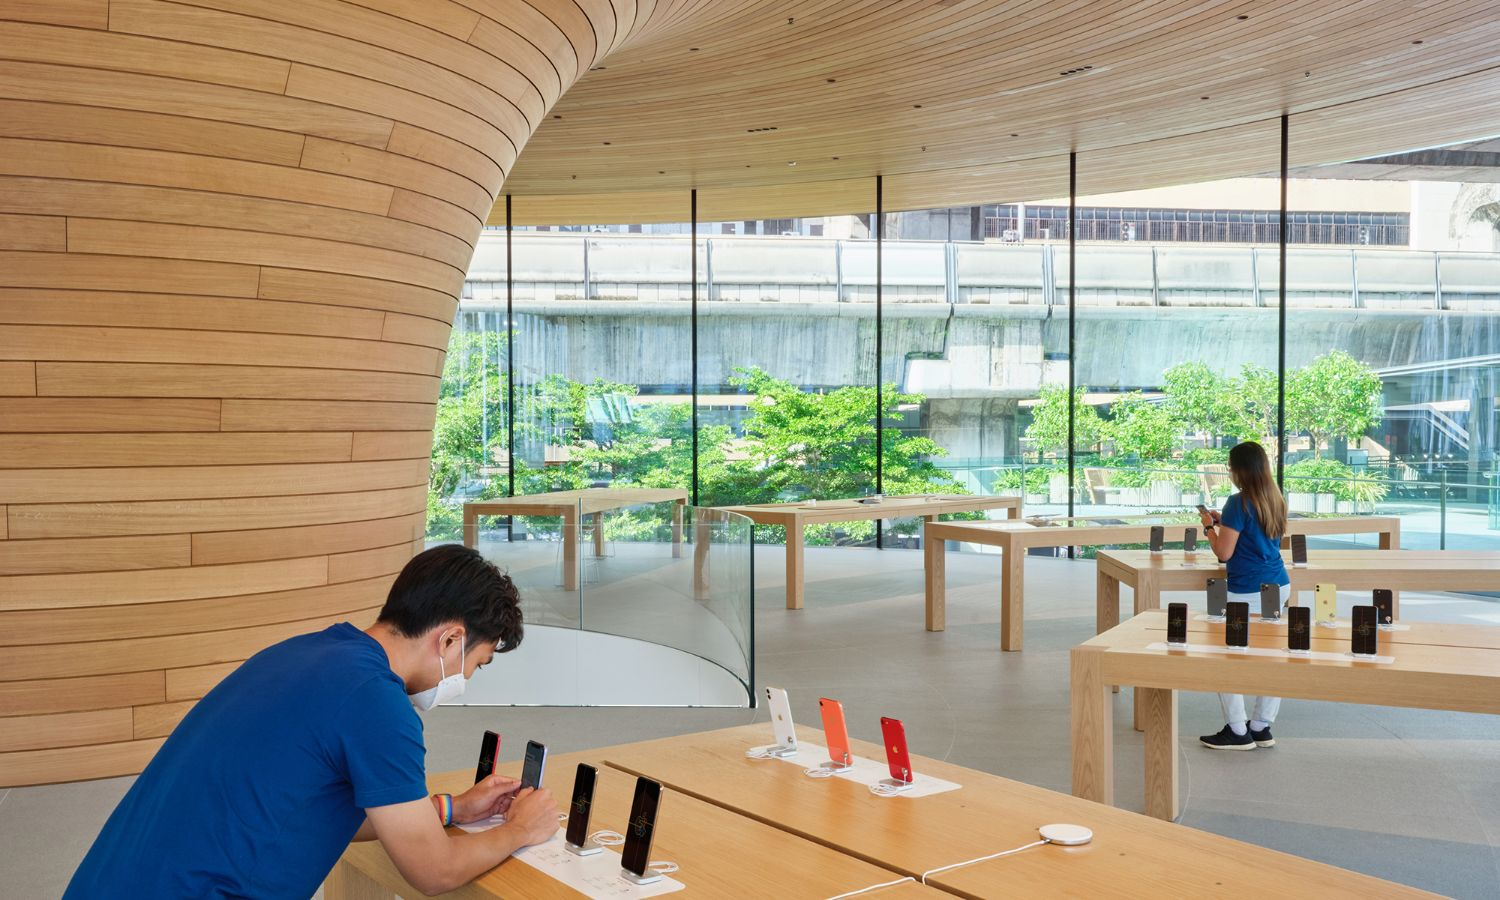 Product presentation in the Apple Store Bangkok under tree canopy